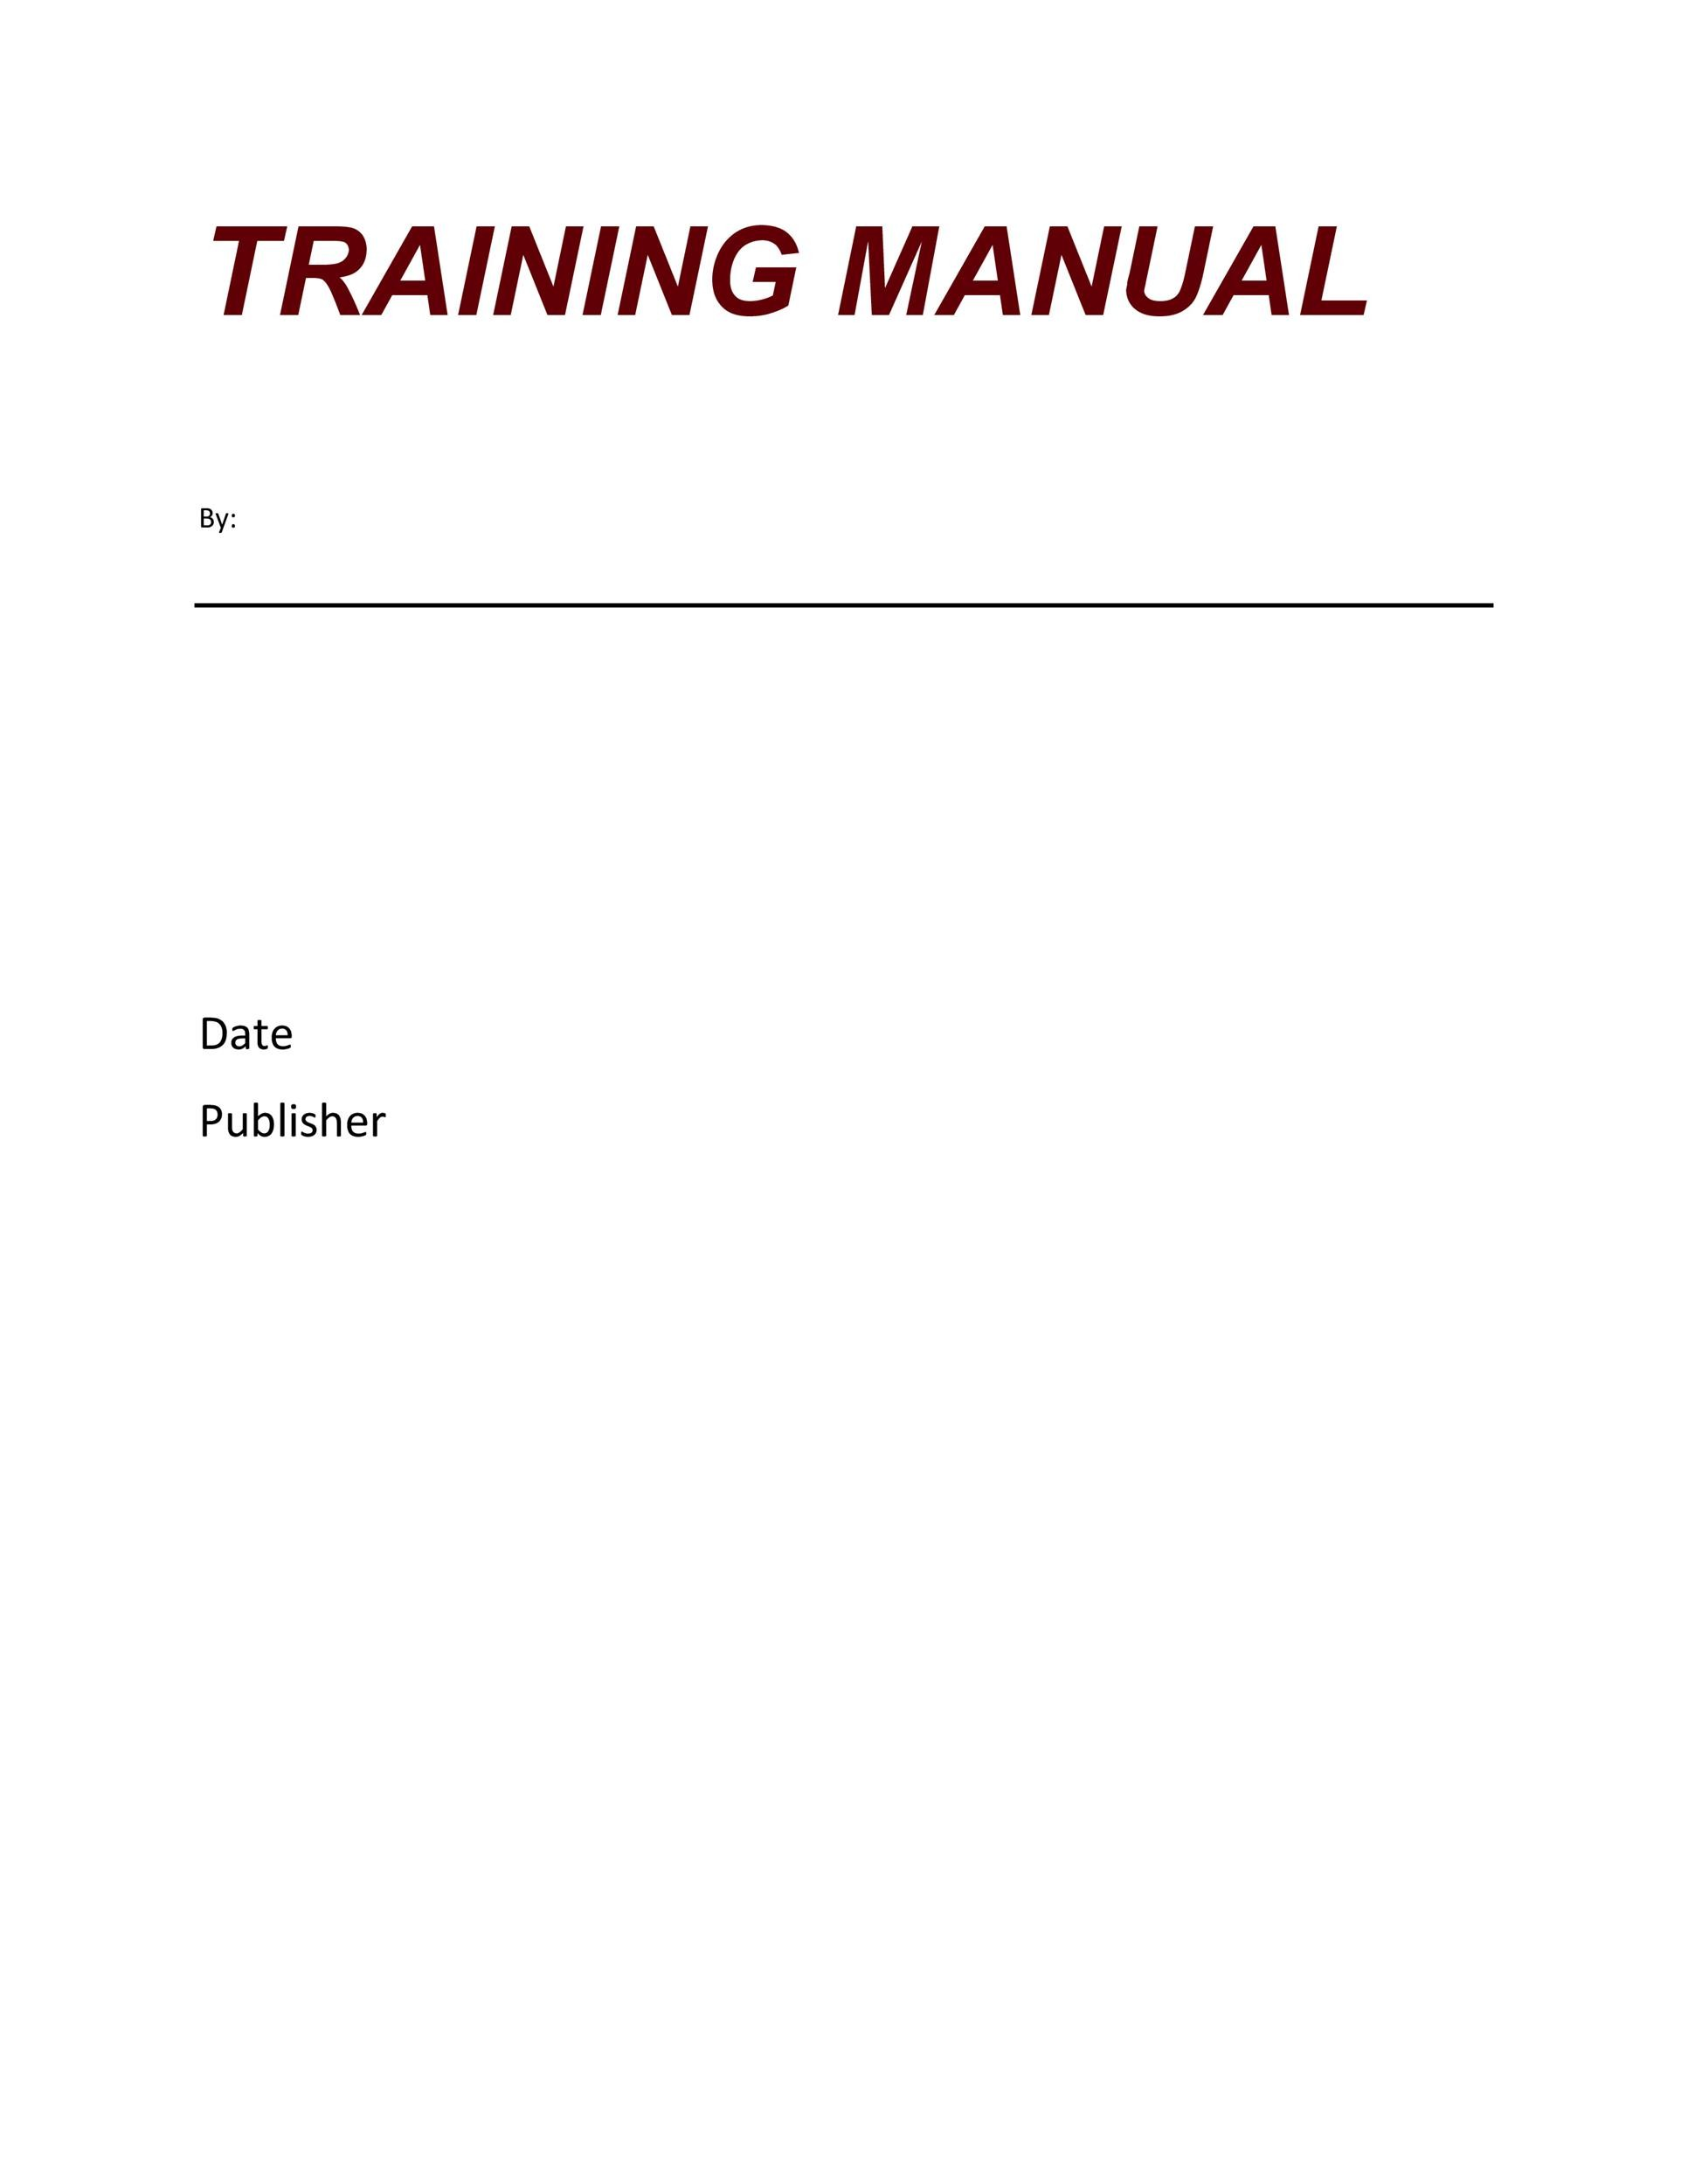 Free training manual template 21